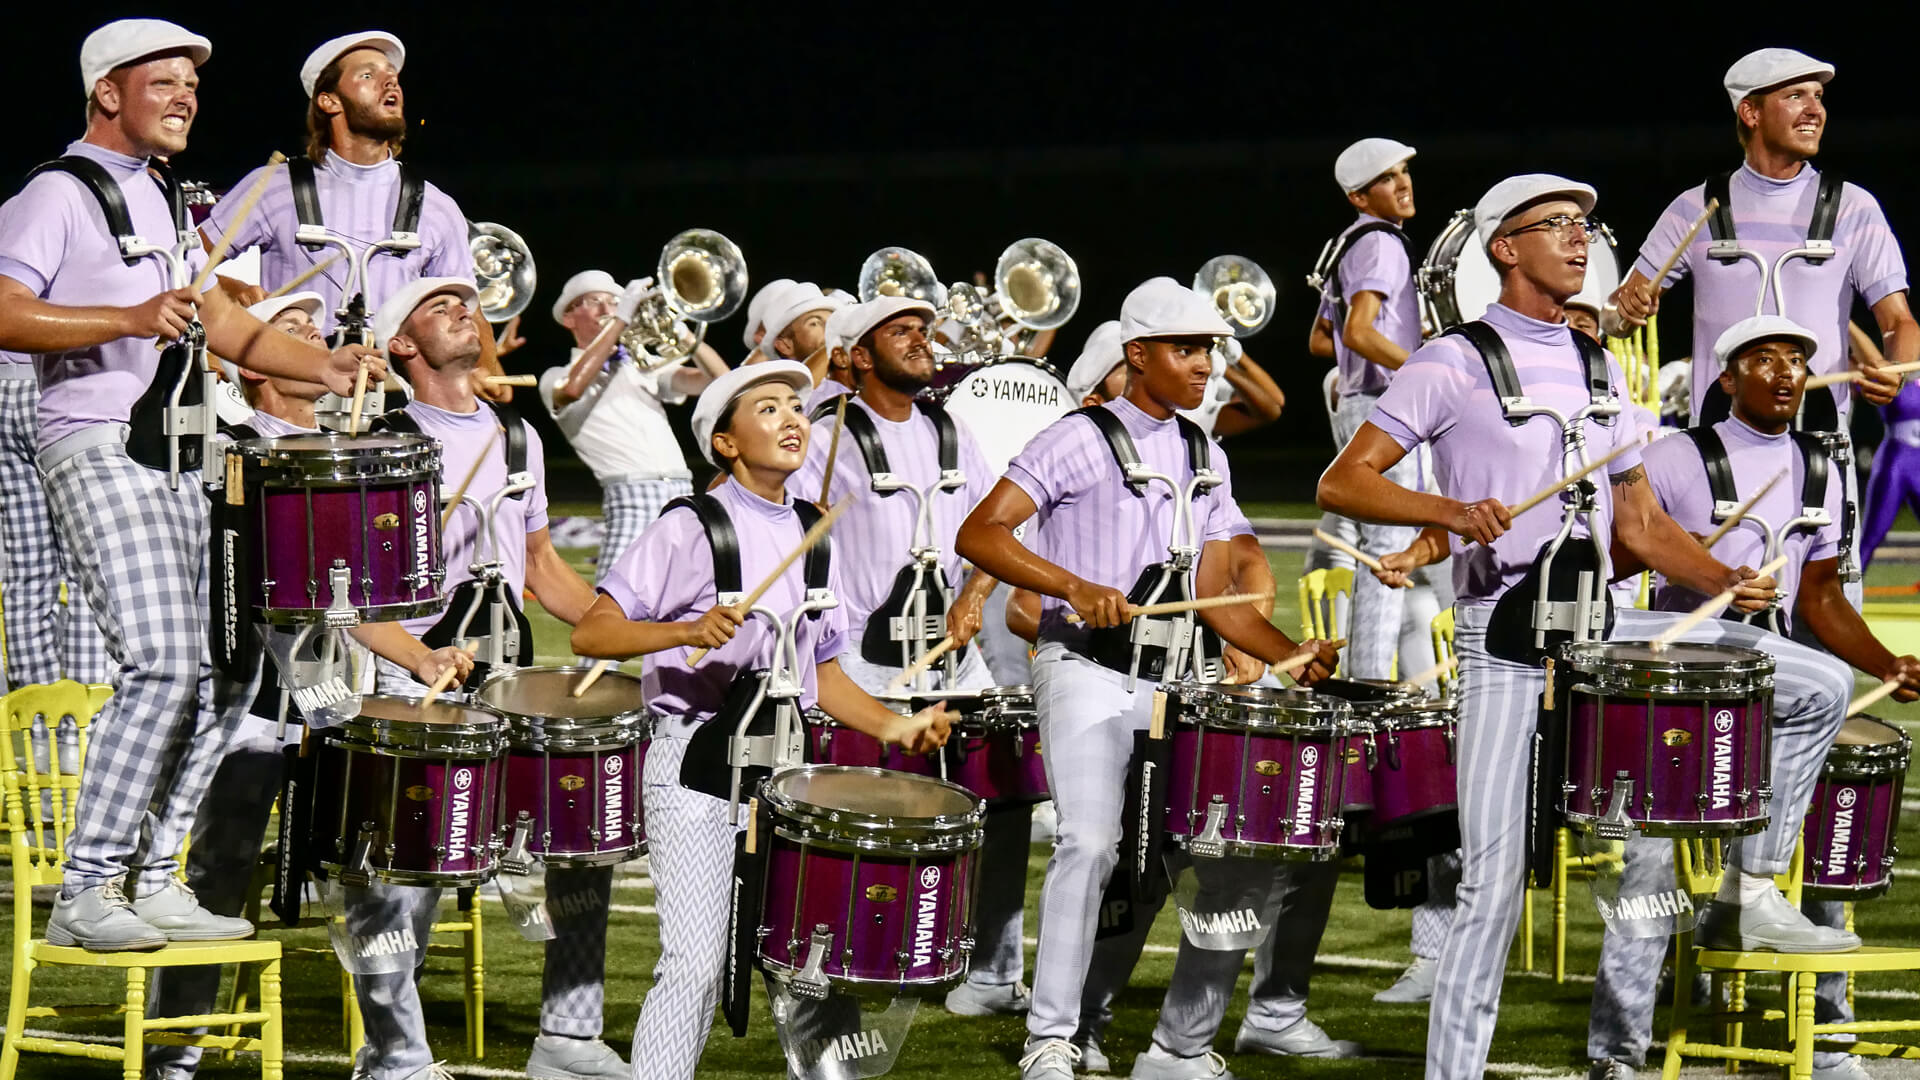 Undefeated Bluecoats roll into St. Louis after Alexandria win